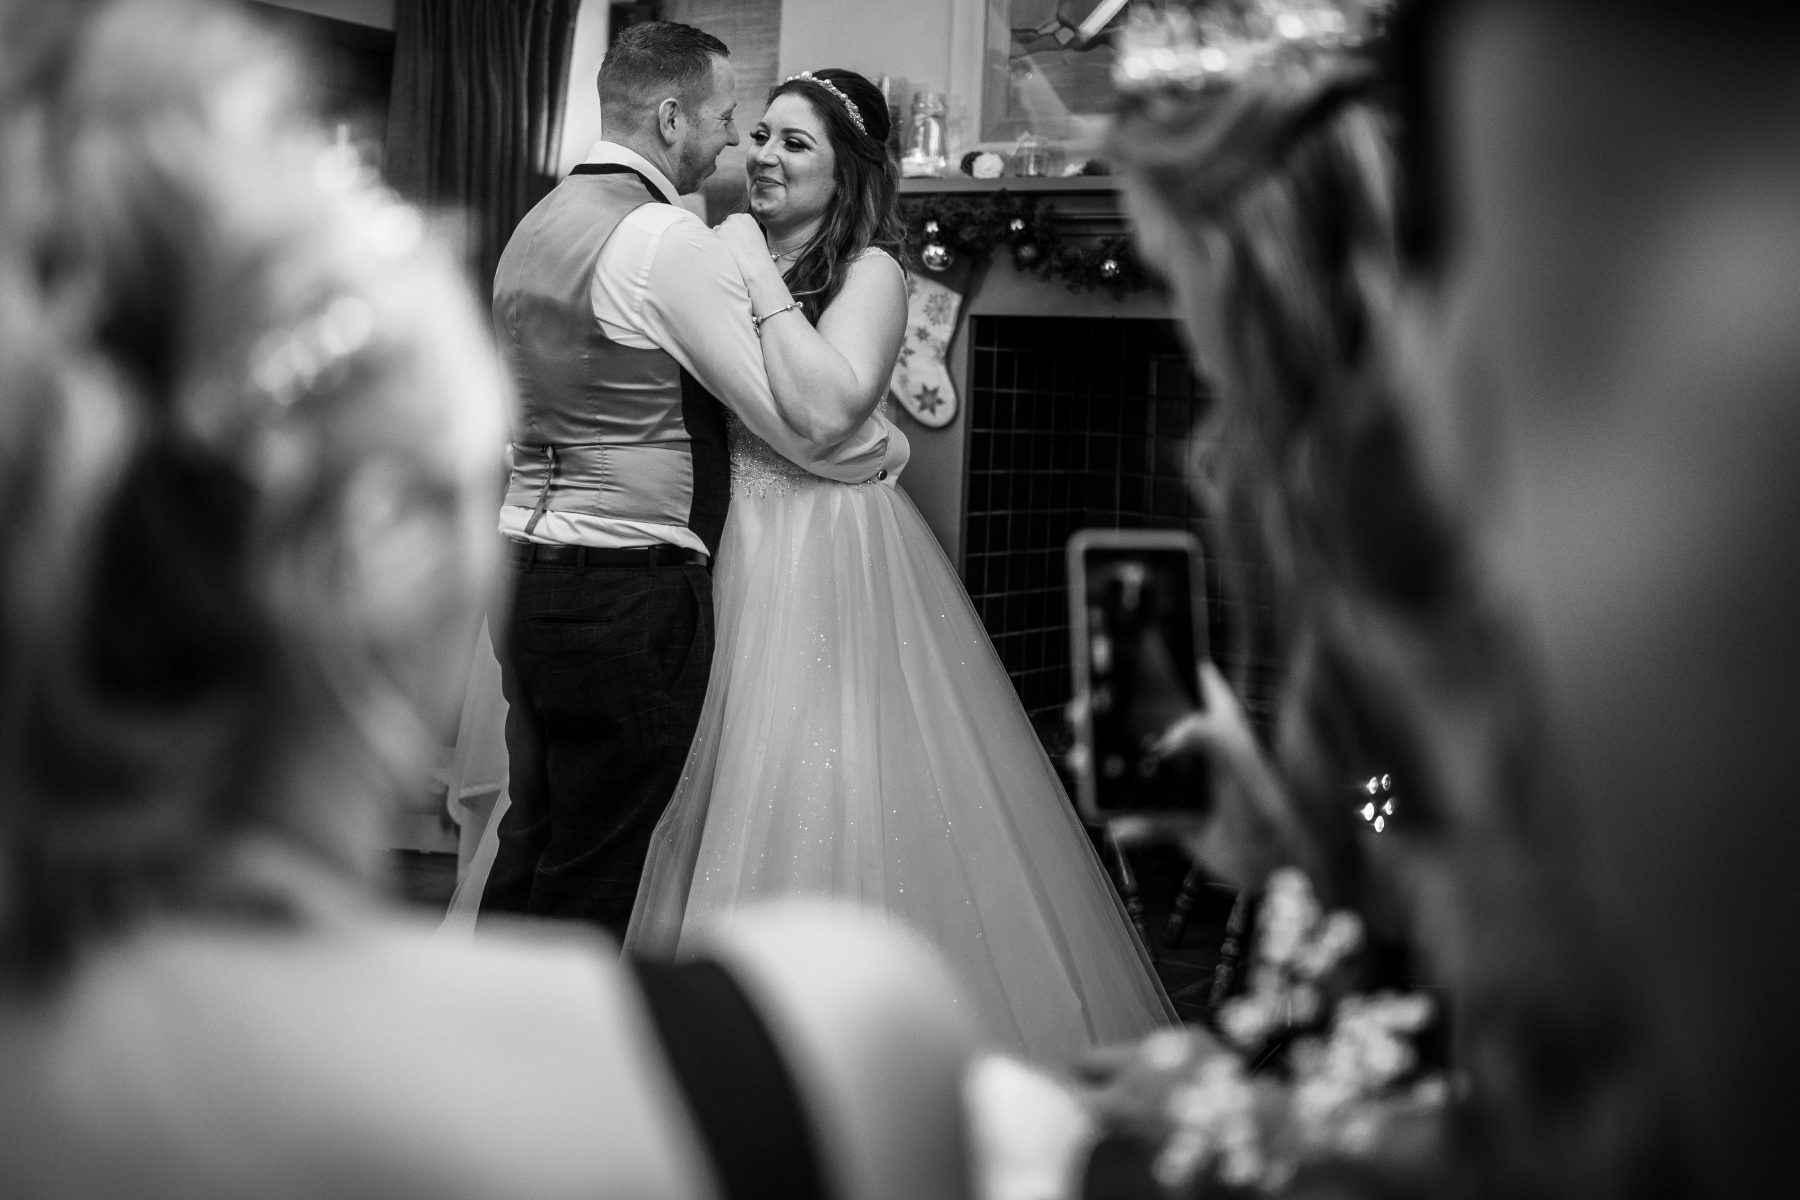 The bride and groom during thier first dance, in black and white